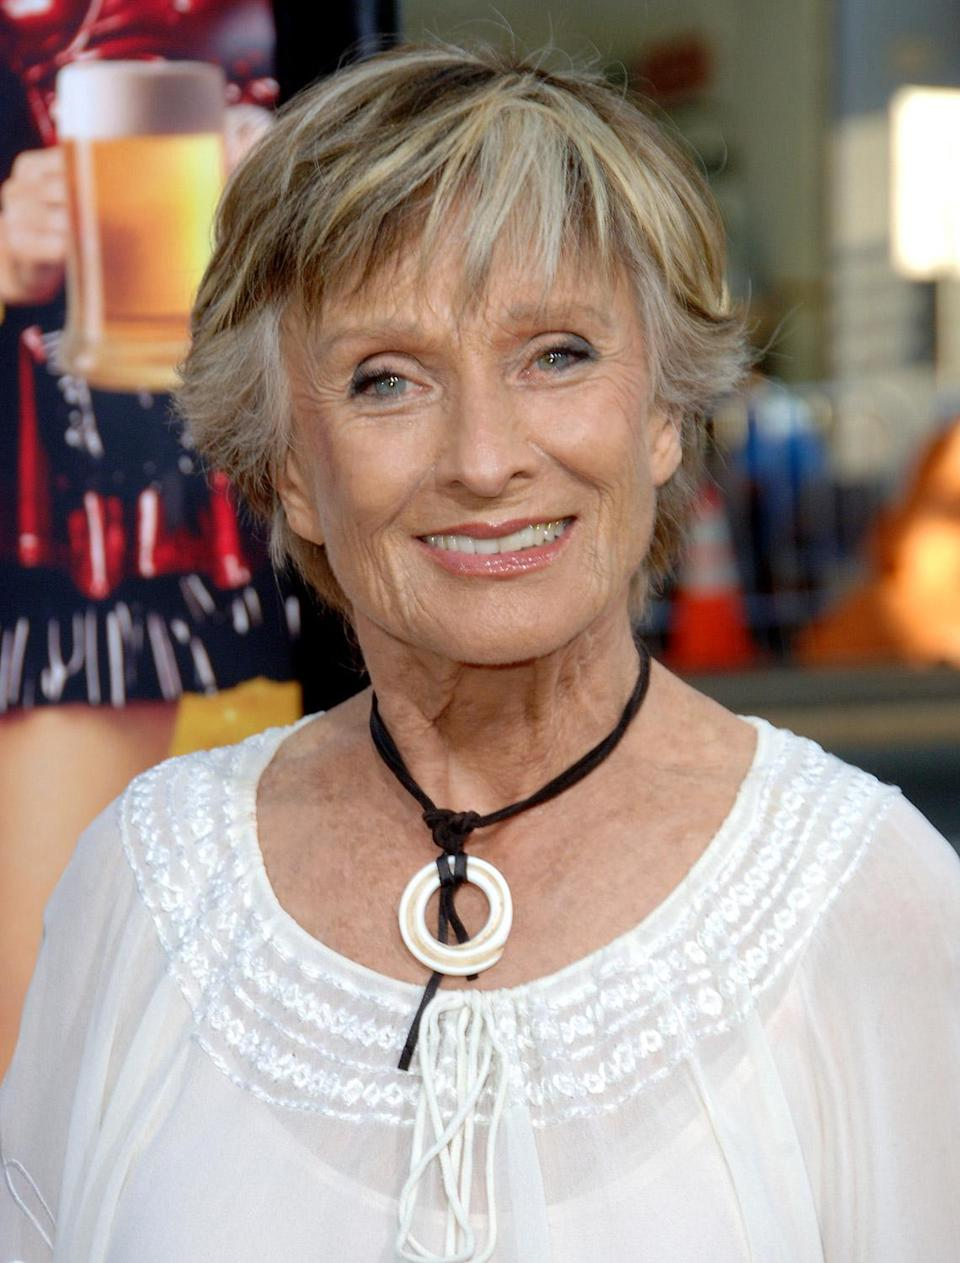 <p>In her later years, Leachman took on voice work on series including <em>Justice League Action, Elena of Avalor, Creative Galaxy</em> and <em>Phineas and Ferb. </em>Her last major TV role was on the 2019 <em>Mad About You</em> reboot.</p>